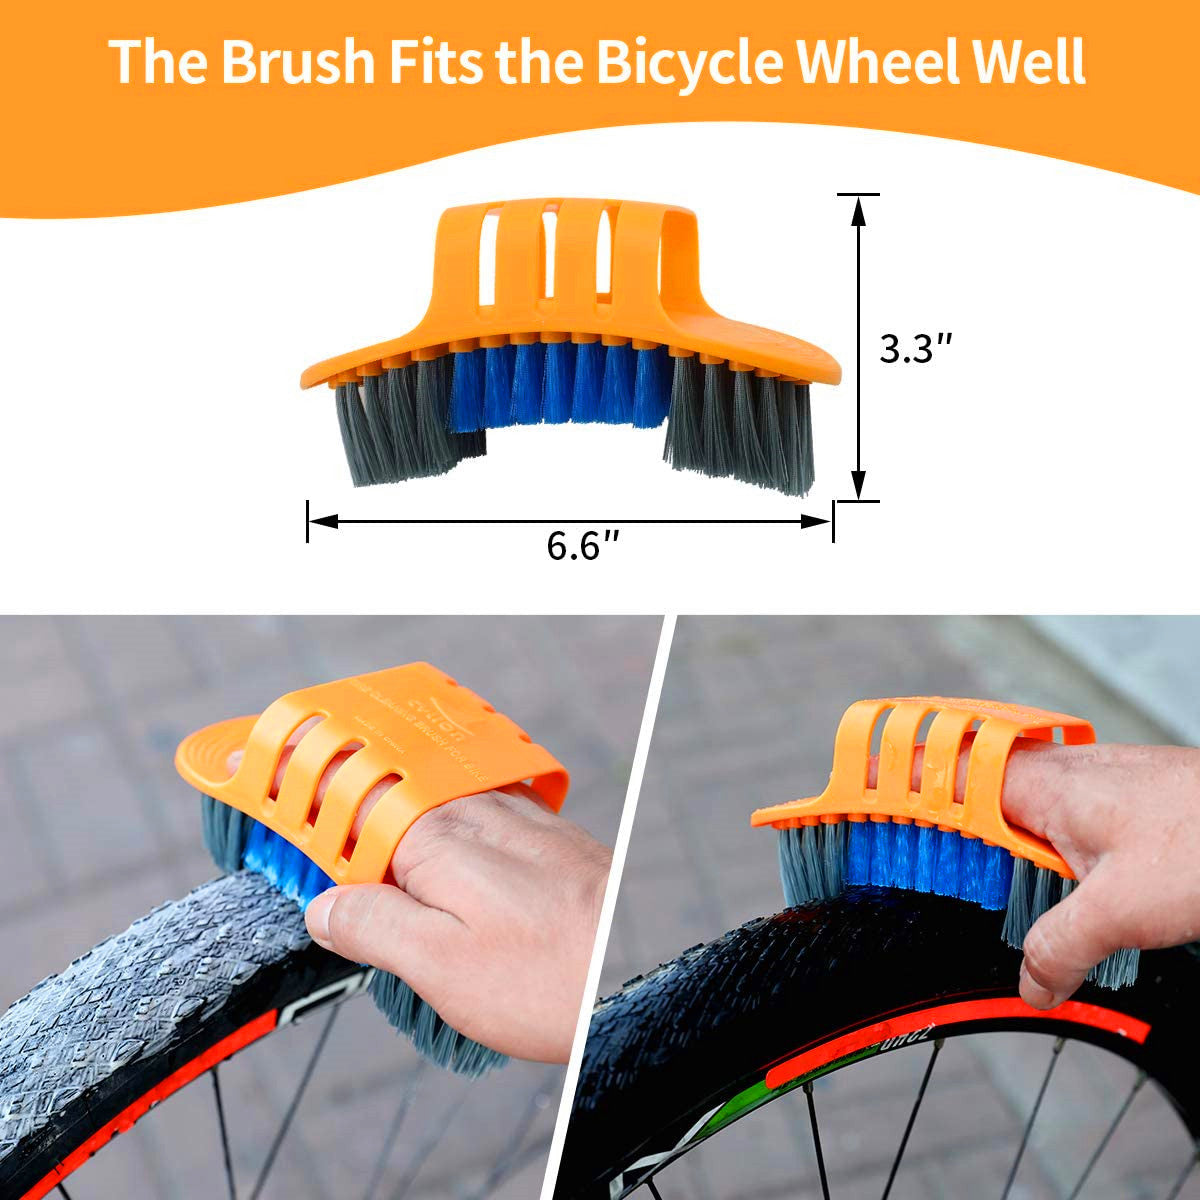 Smaman Precision Bicycle Cleaning Brush Tool Set, Including Bike Chain Scrubber Road Fit for Mountain City Hybrid,MTB,BMX Bike and Folding Bike, 8 Pieces Kit